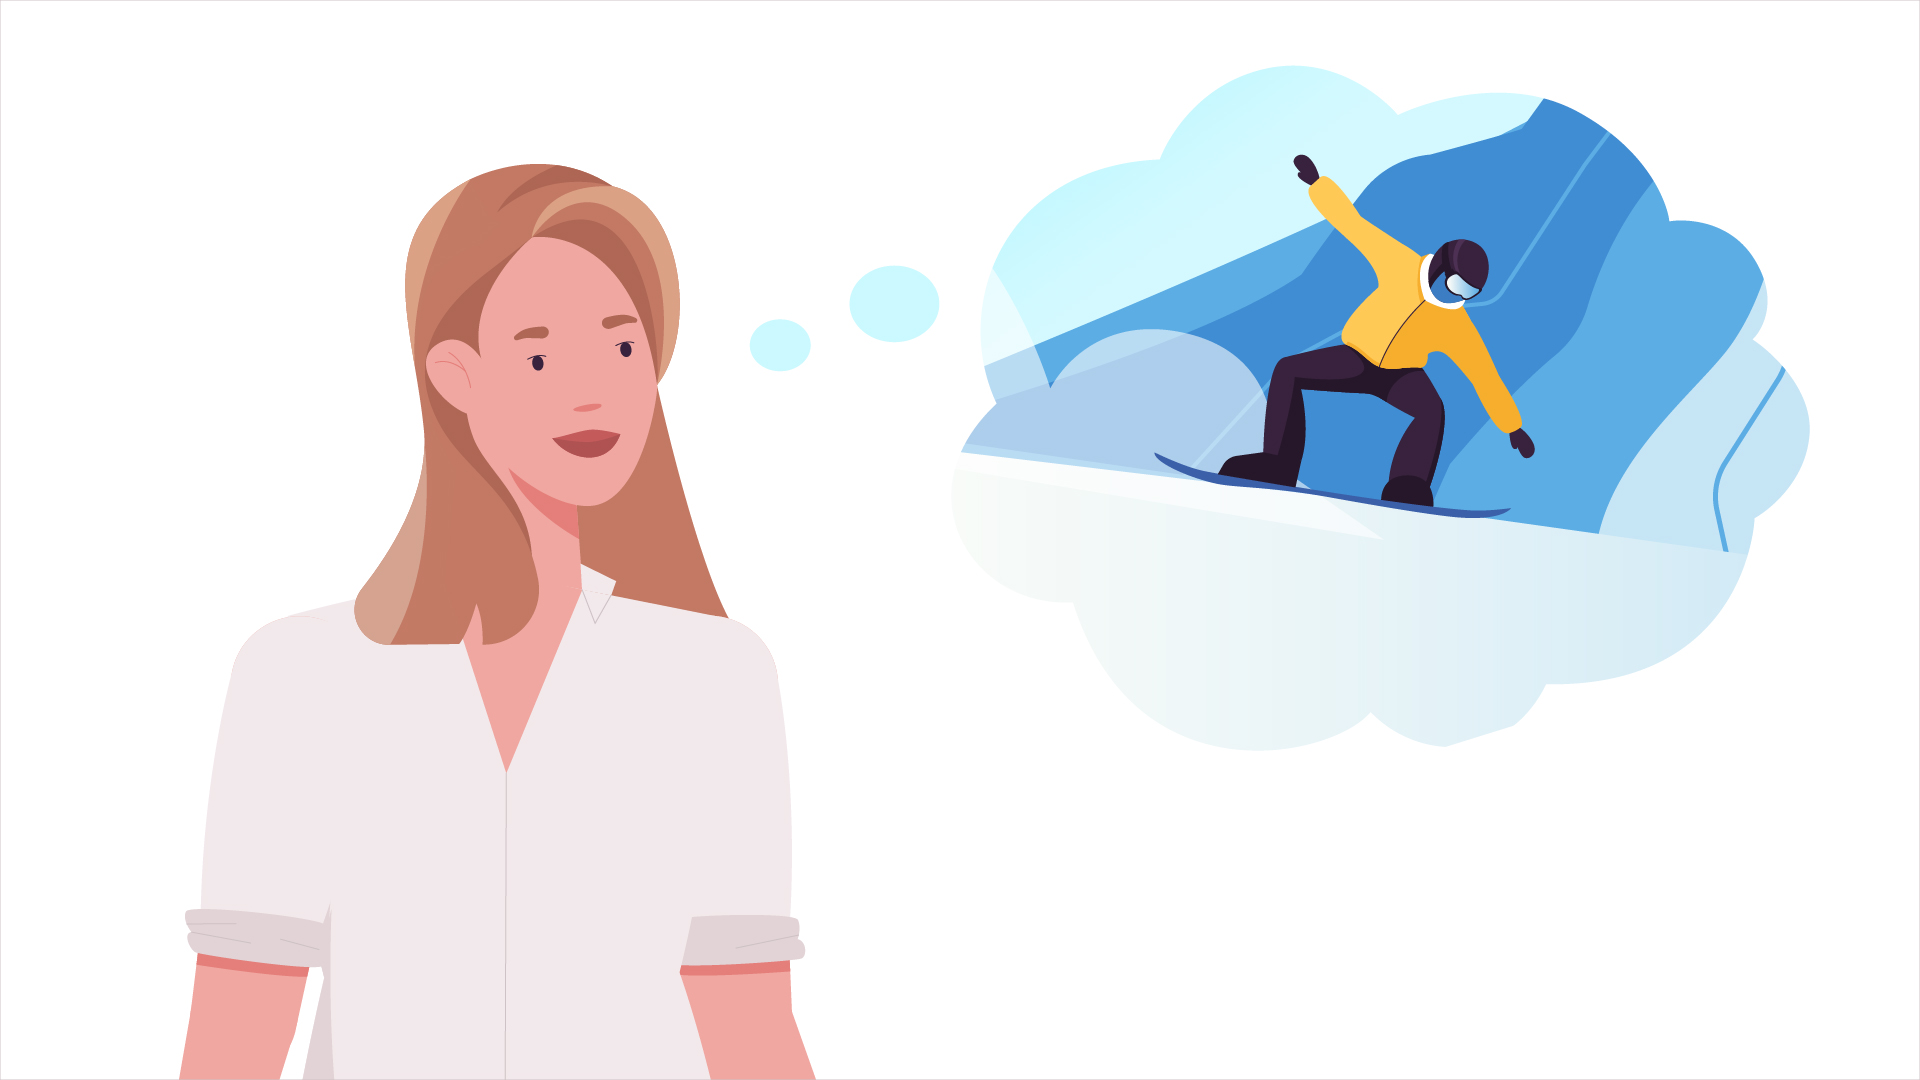 Dreams | Snowboarding | Animation by Darvideo